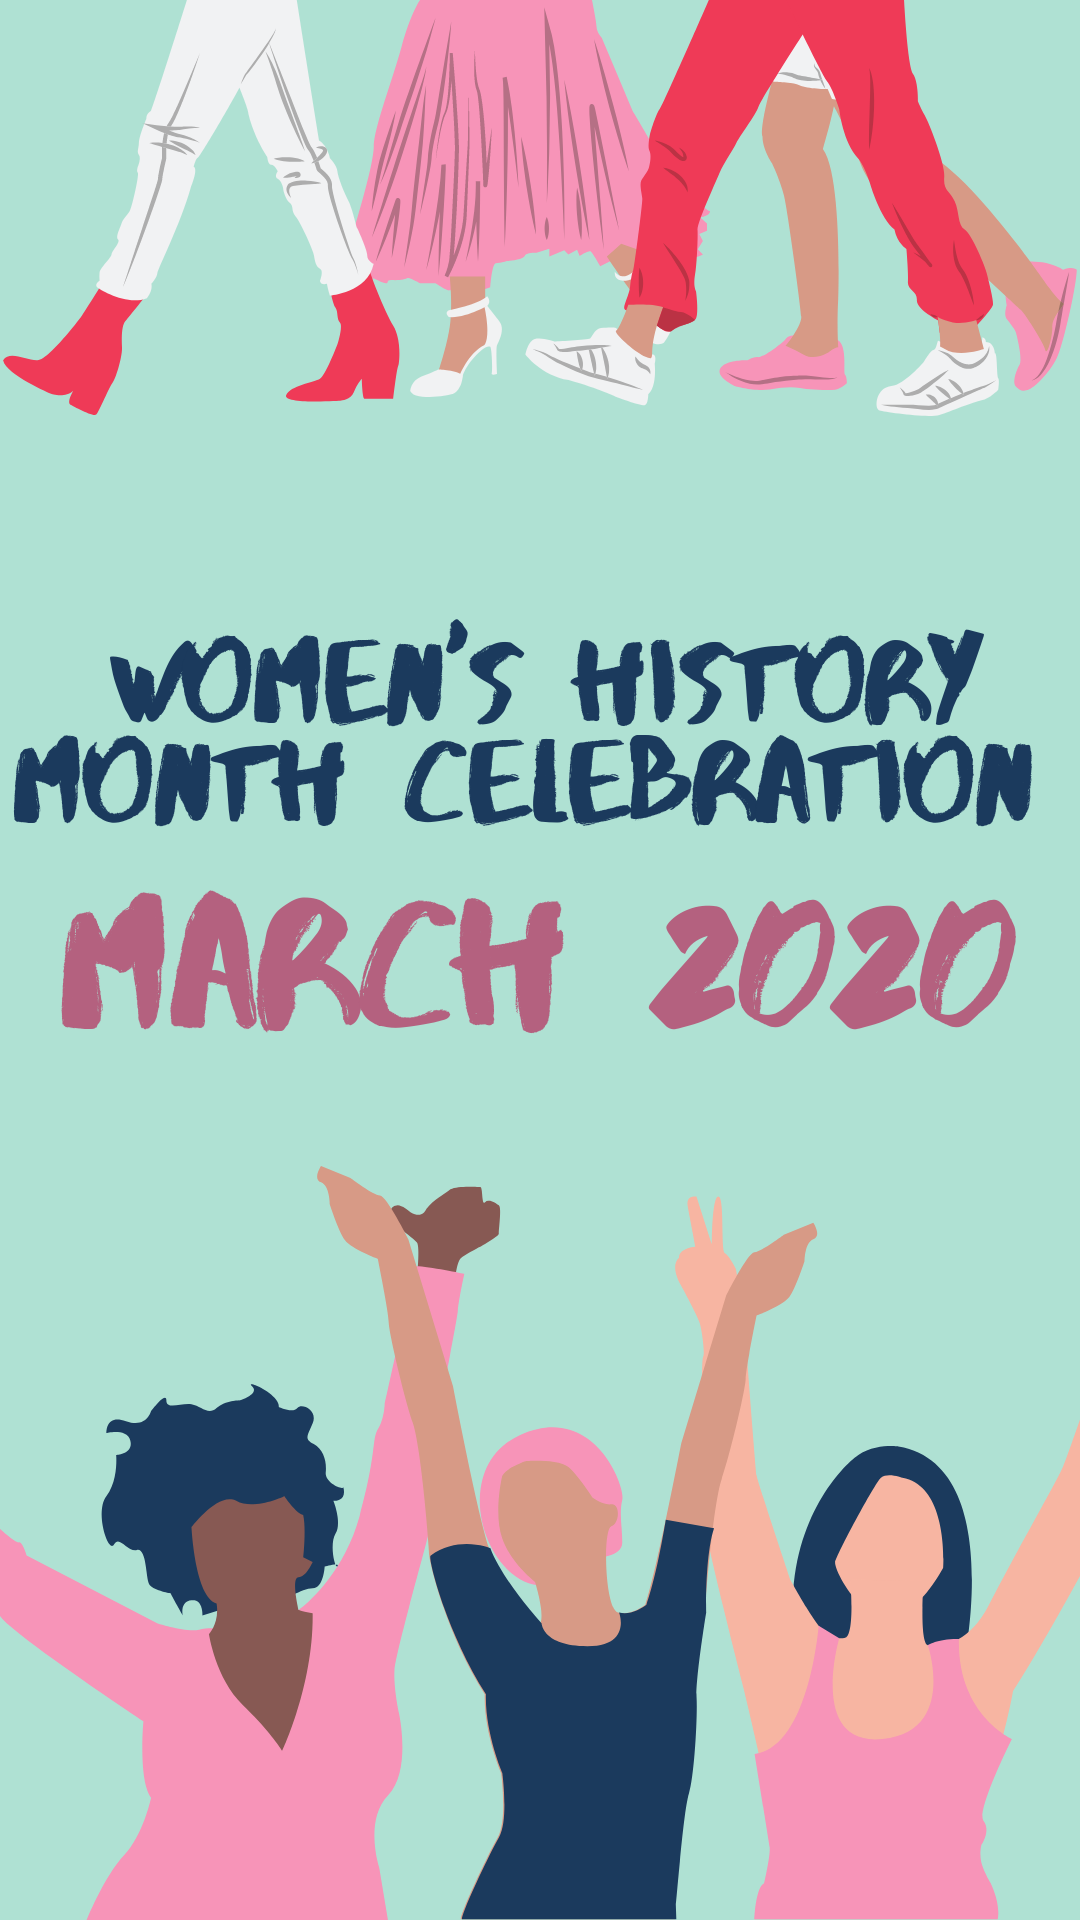 Women's history month is here